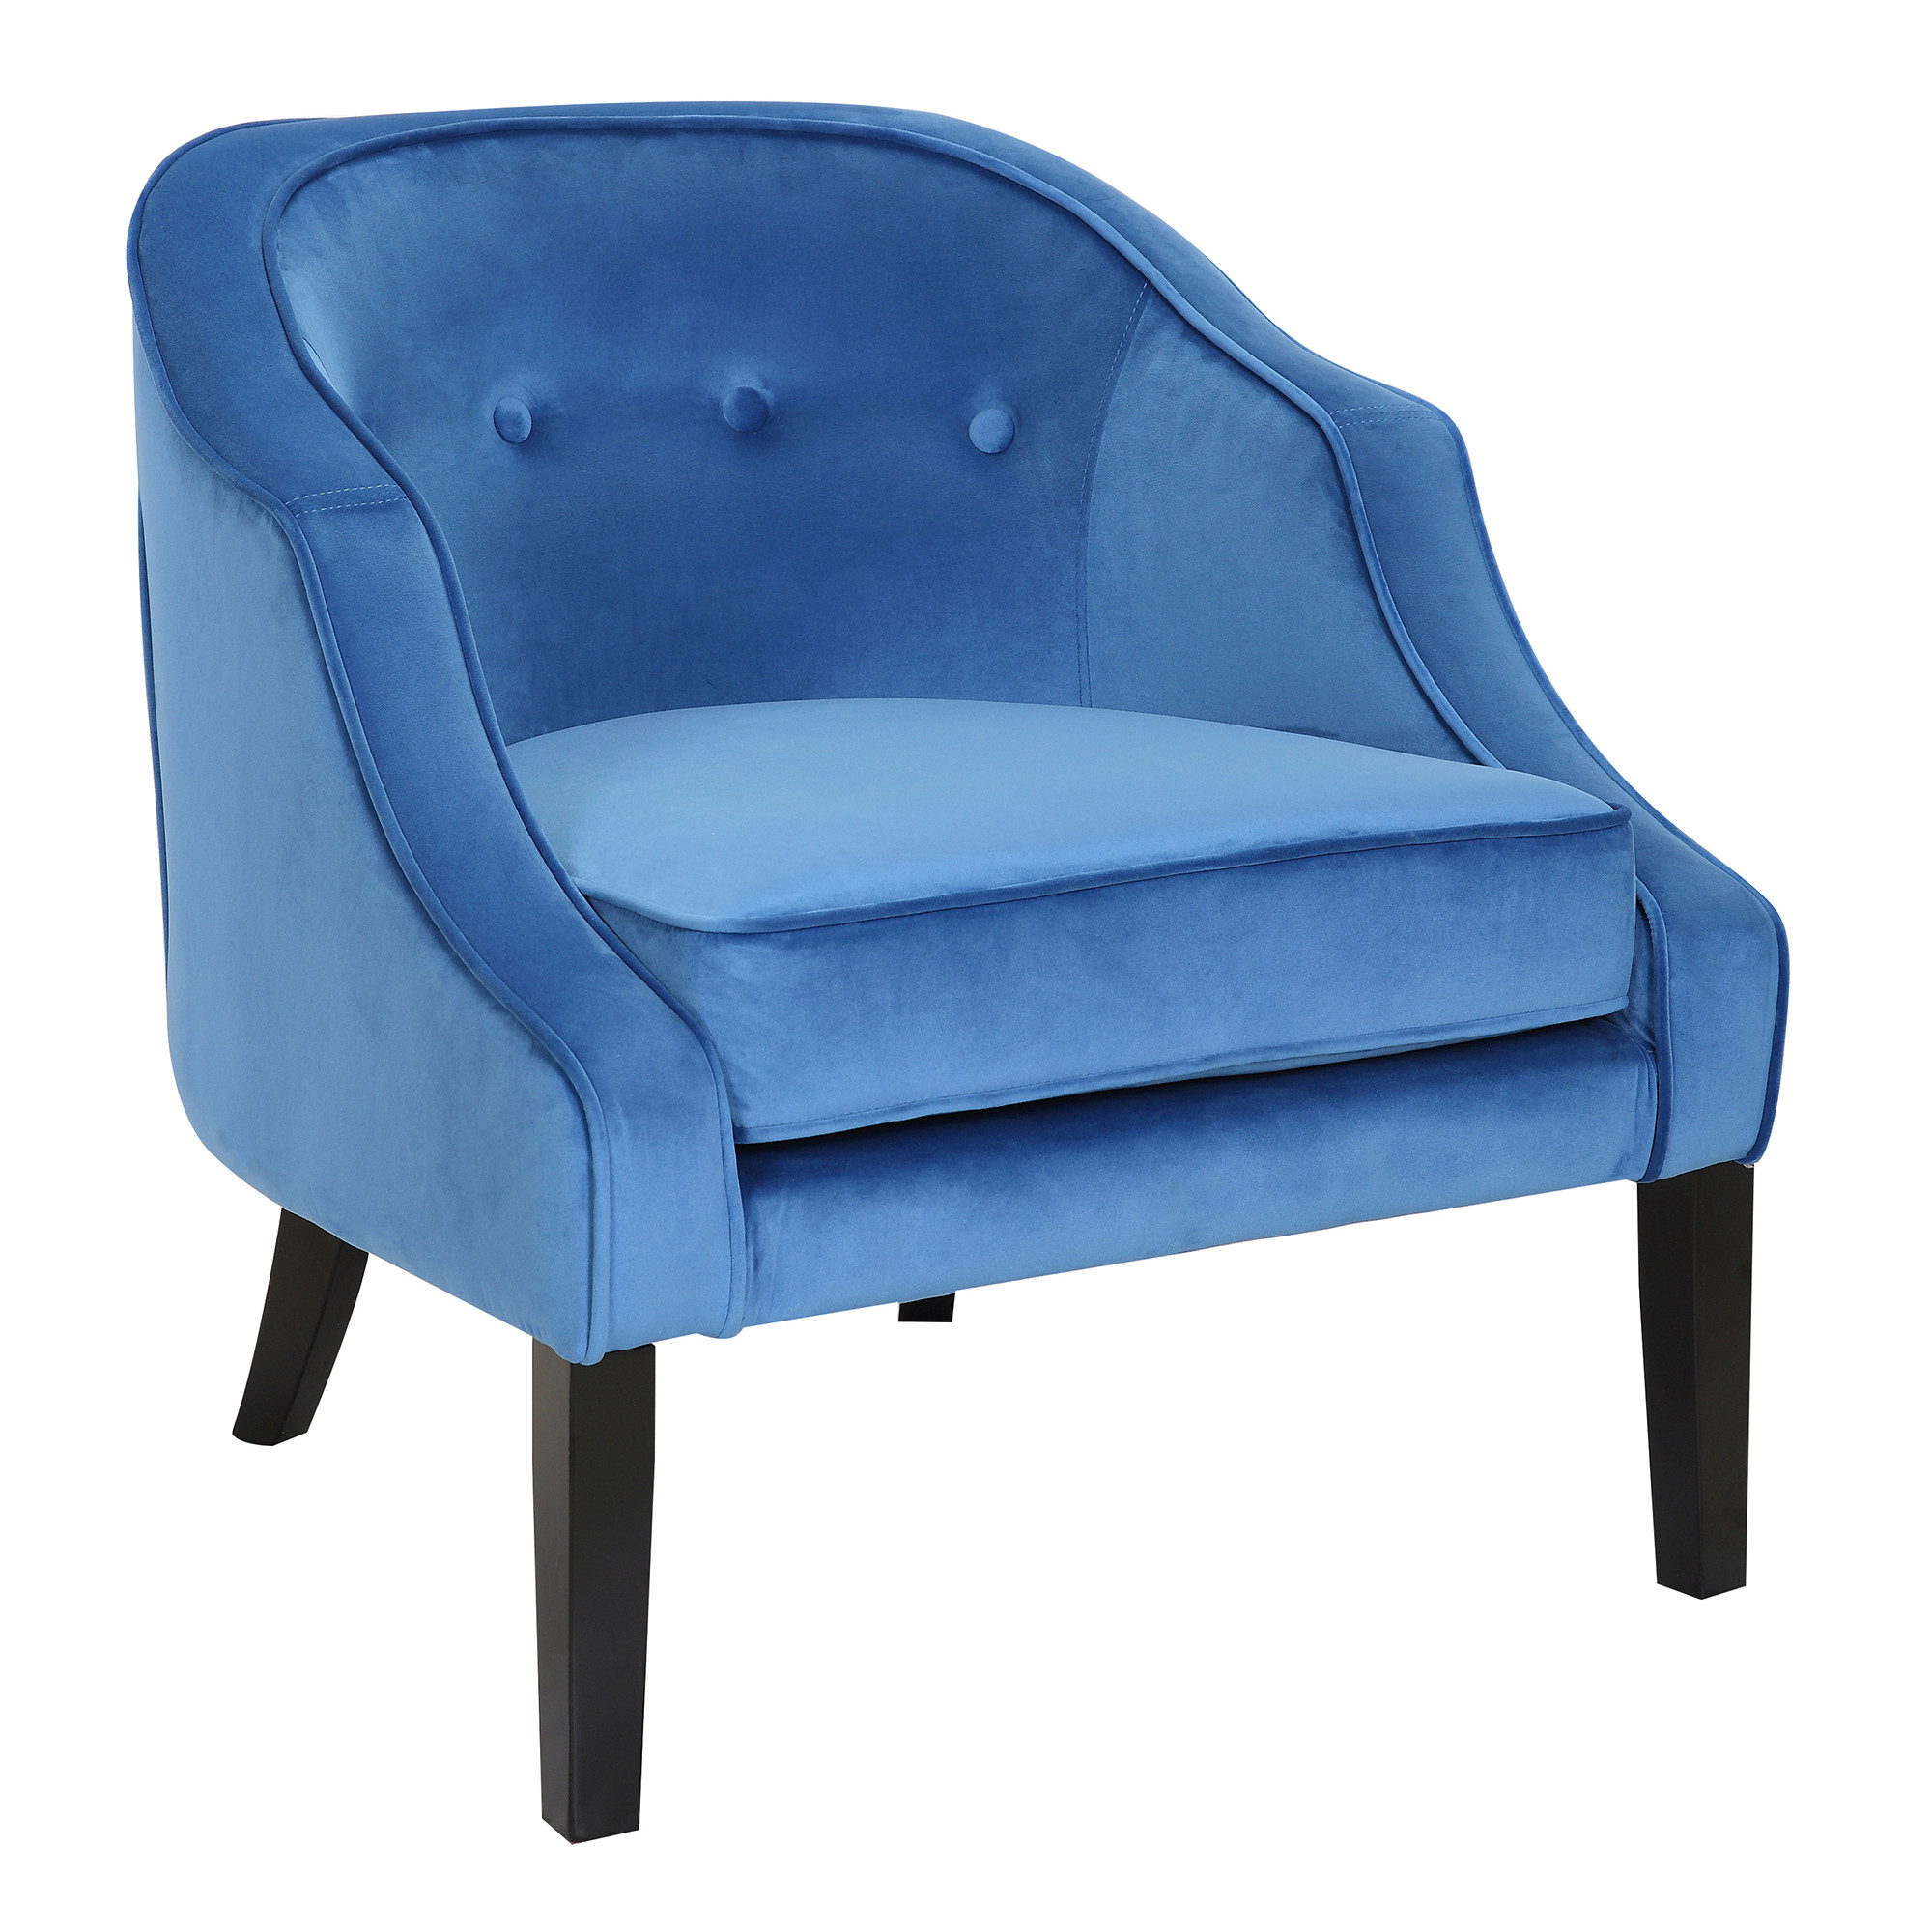 Accent Chairs Prices Sofia Accent Chair Lumisource Stylish Decor At